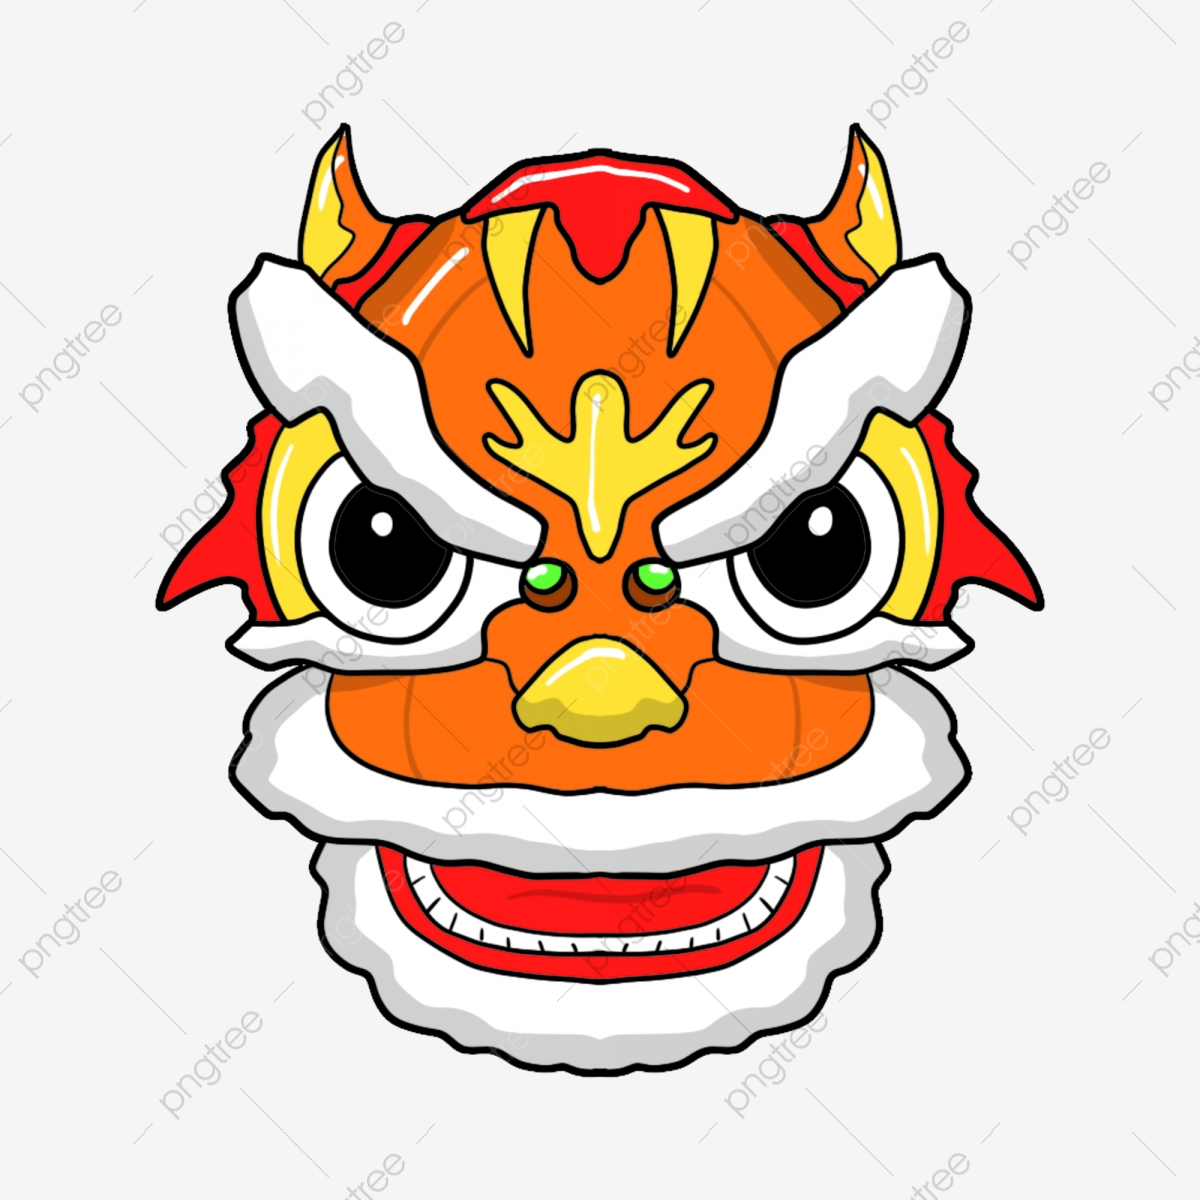 Chinese Lion Dance Elements, Lion Clipart, Dance Clipart, Chinese.